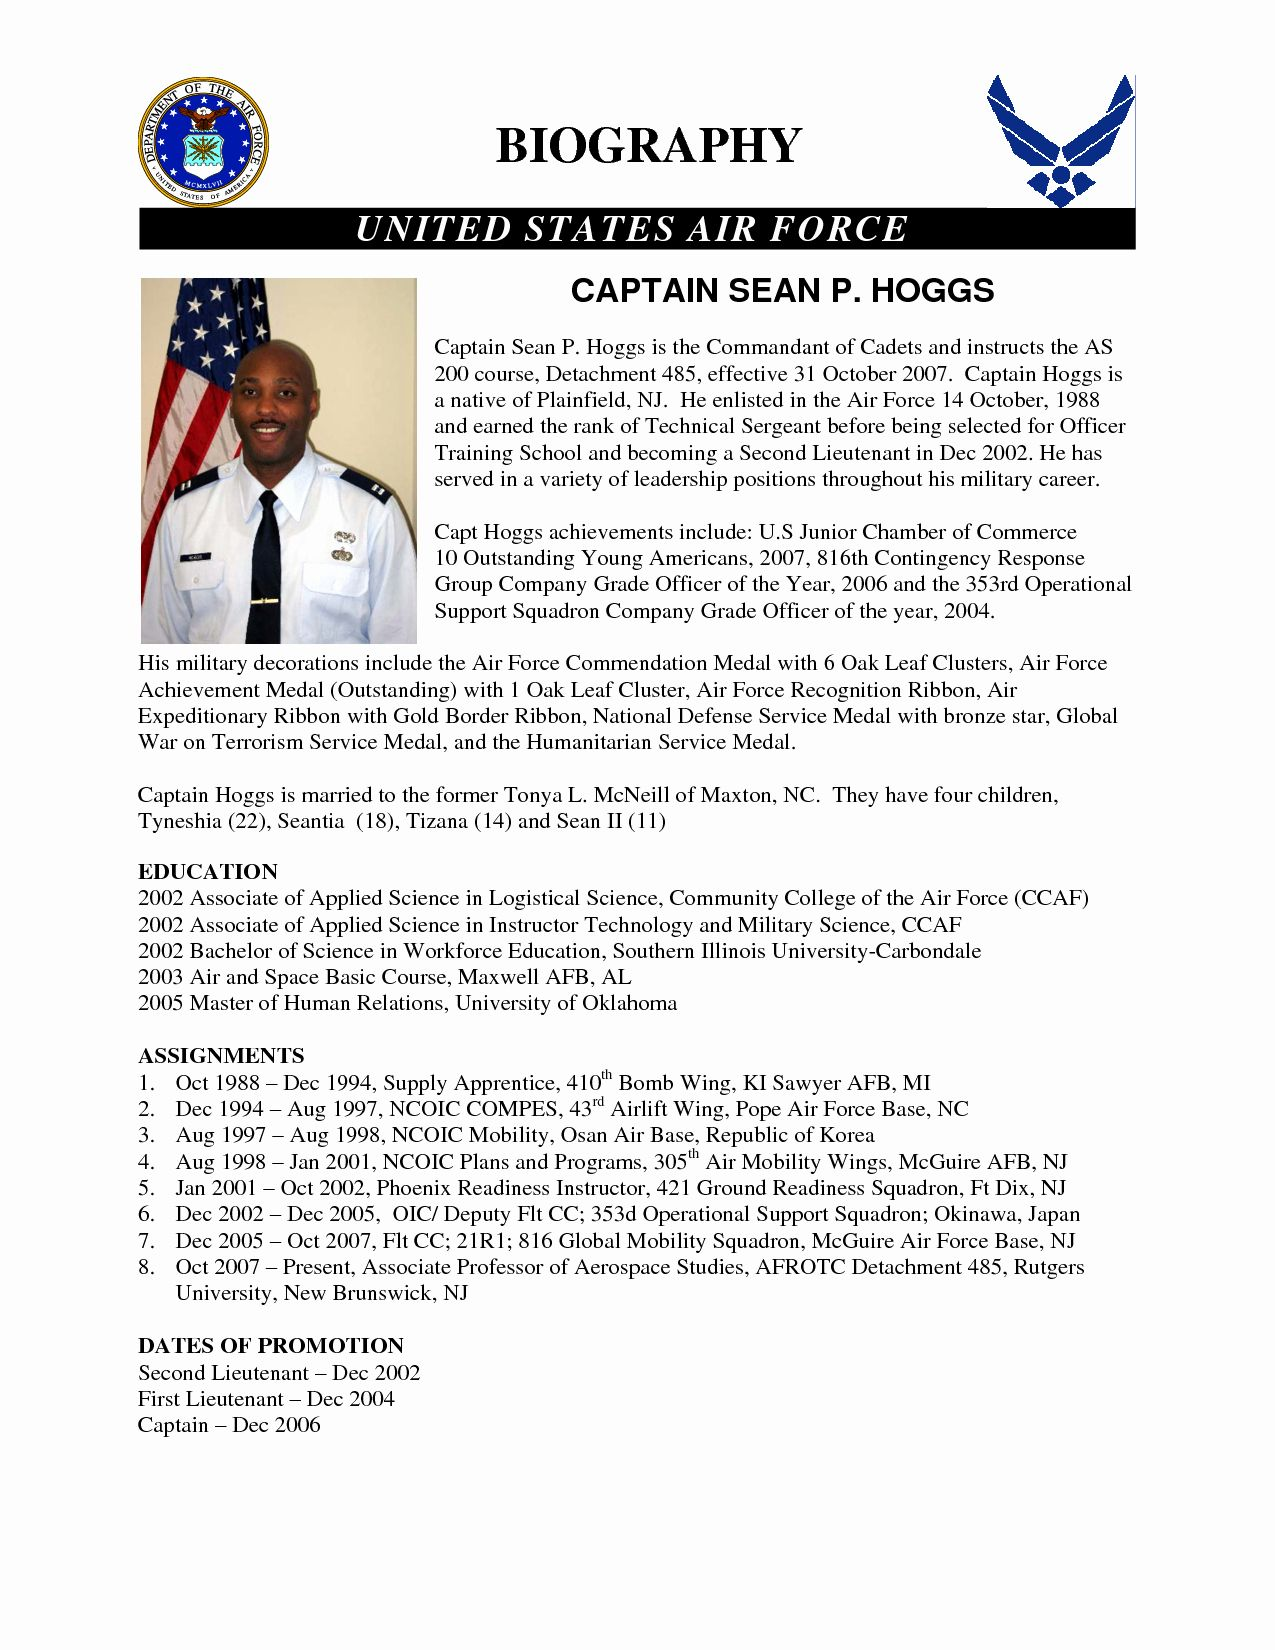 Army Board Biography Example Unique 24 Of Army Biography